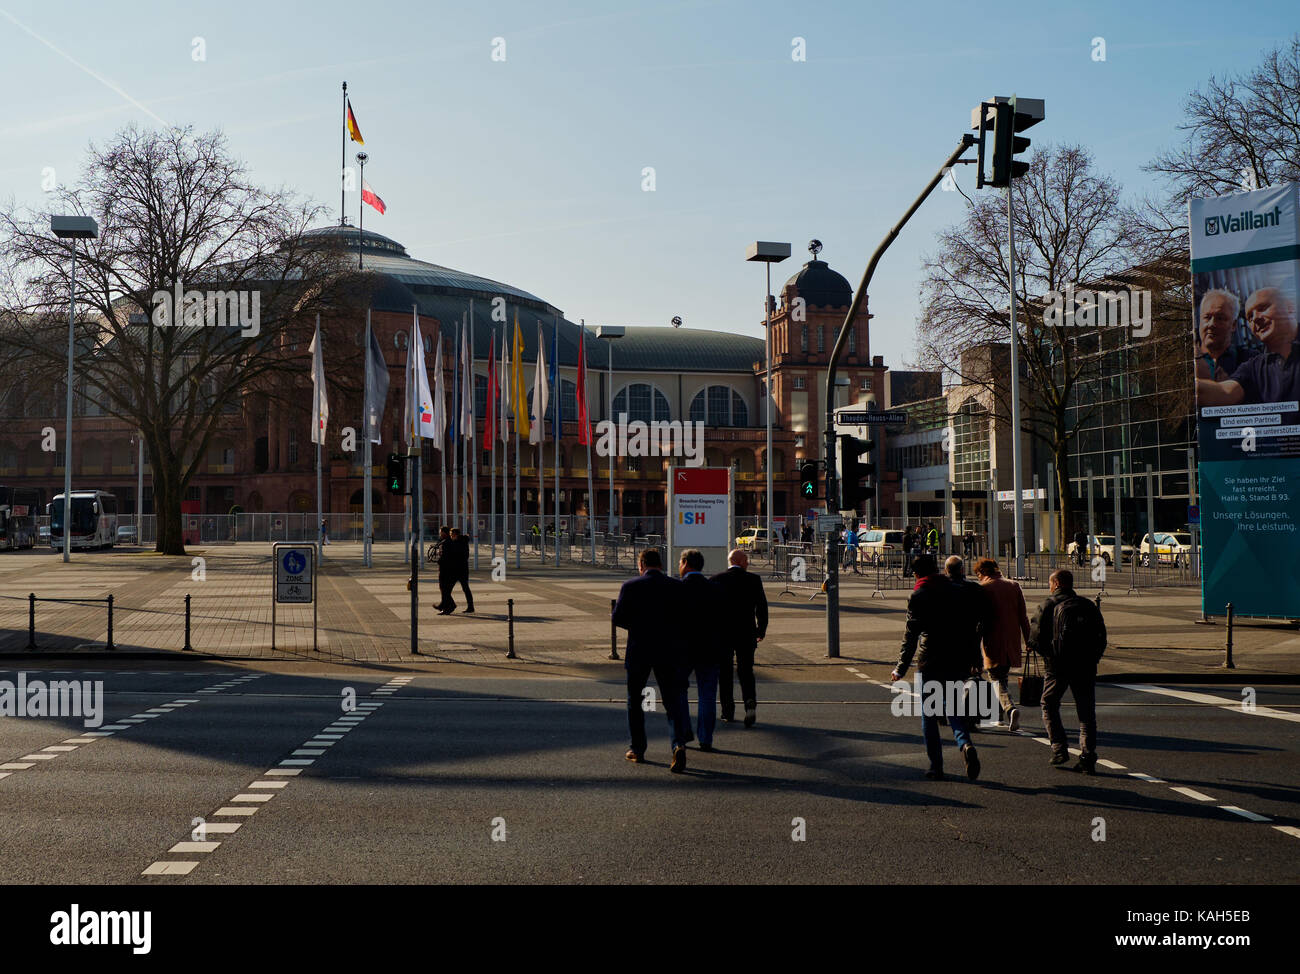 Frankfurt am Main, Germany - March 16, 2017: Men crossing the road in front of Messe Frankfurt Festival Hall (Festhalle Stock Photo